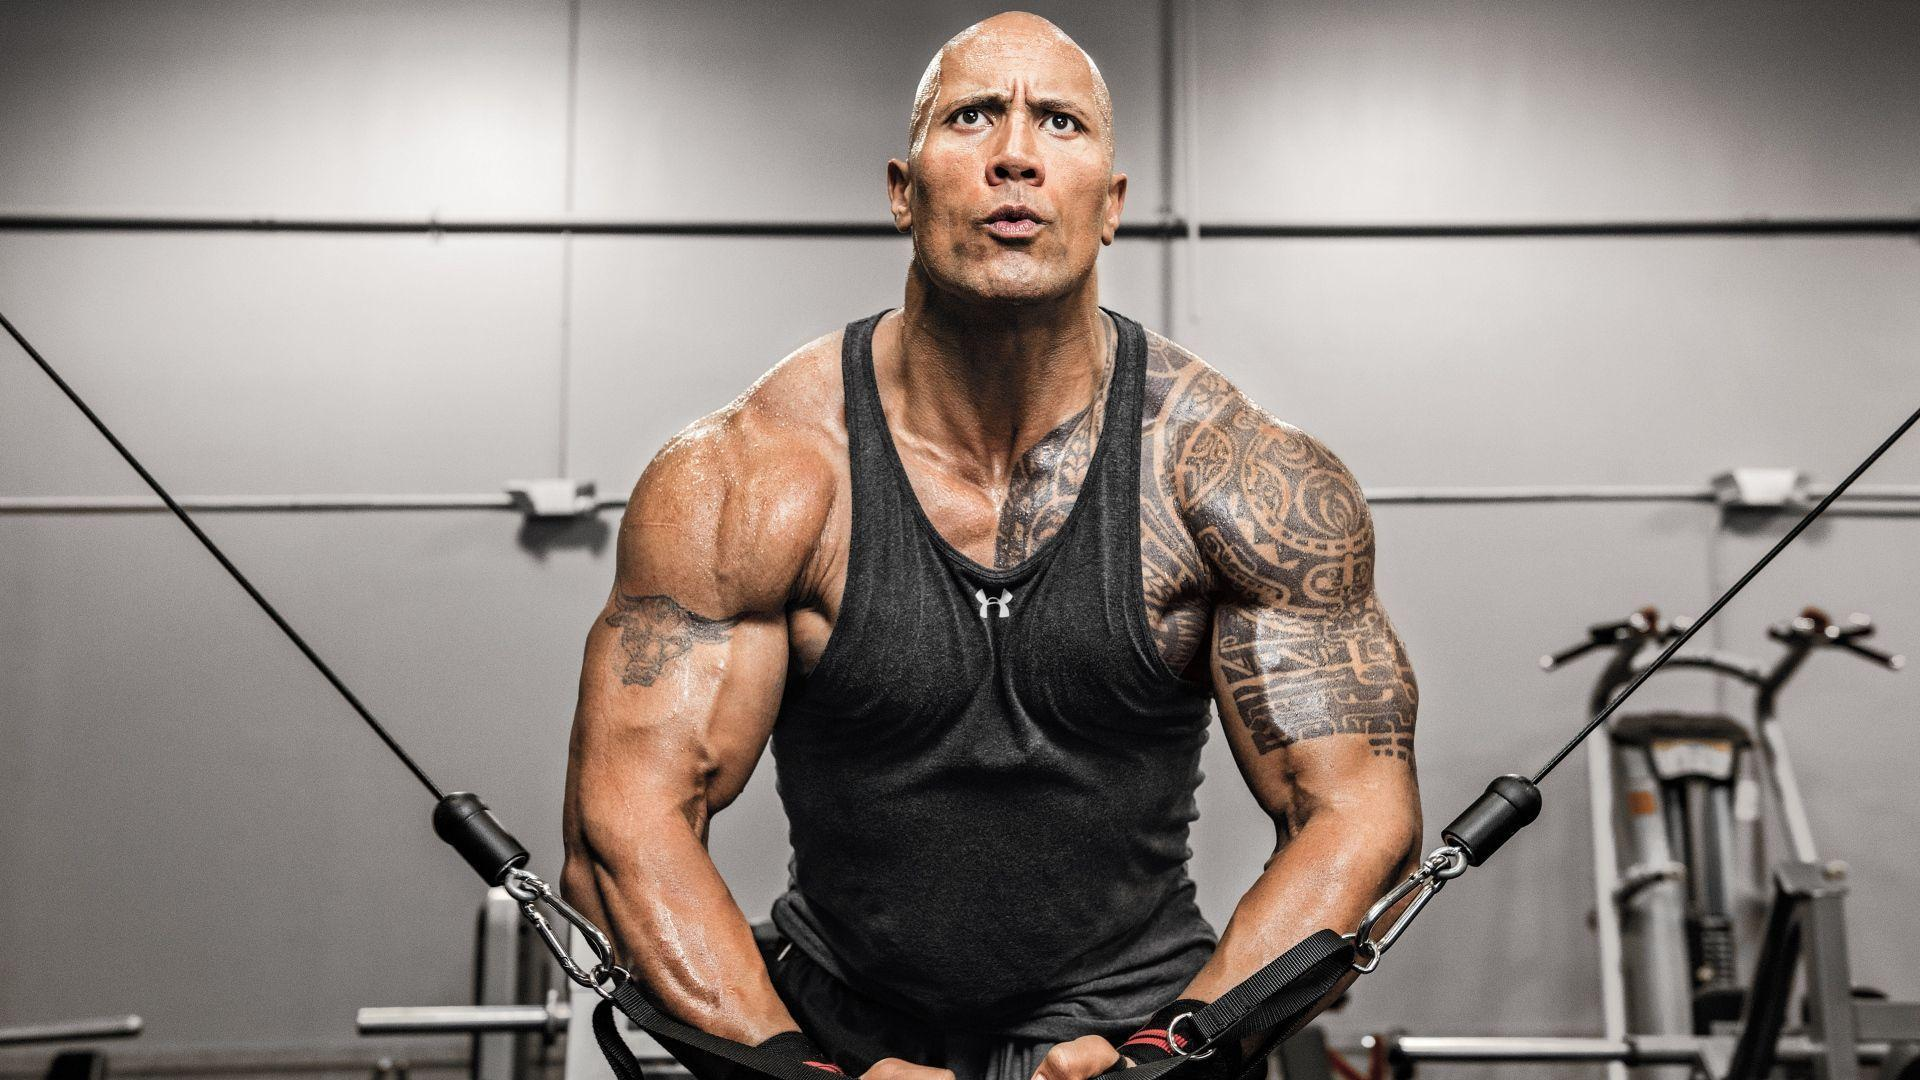 The Rock Actor Gym Exercise Workout Wallpaper | WallpapersByte